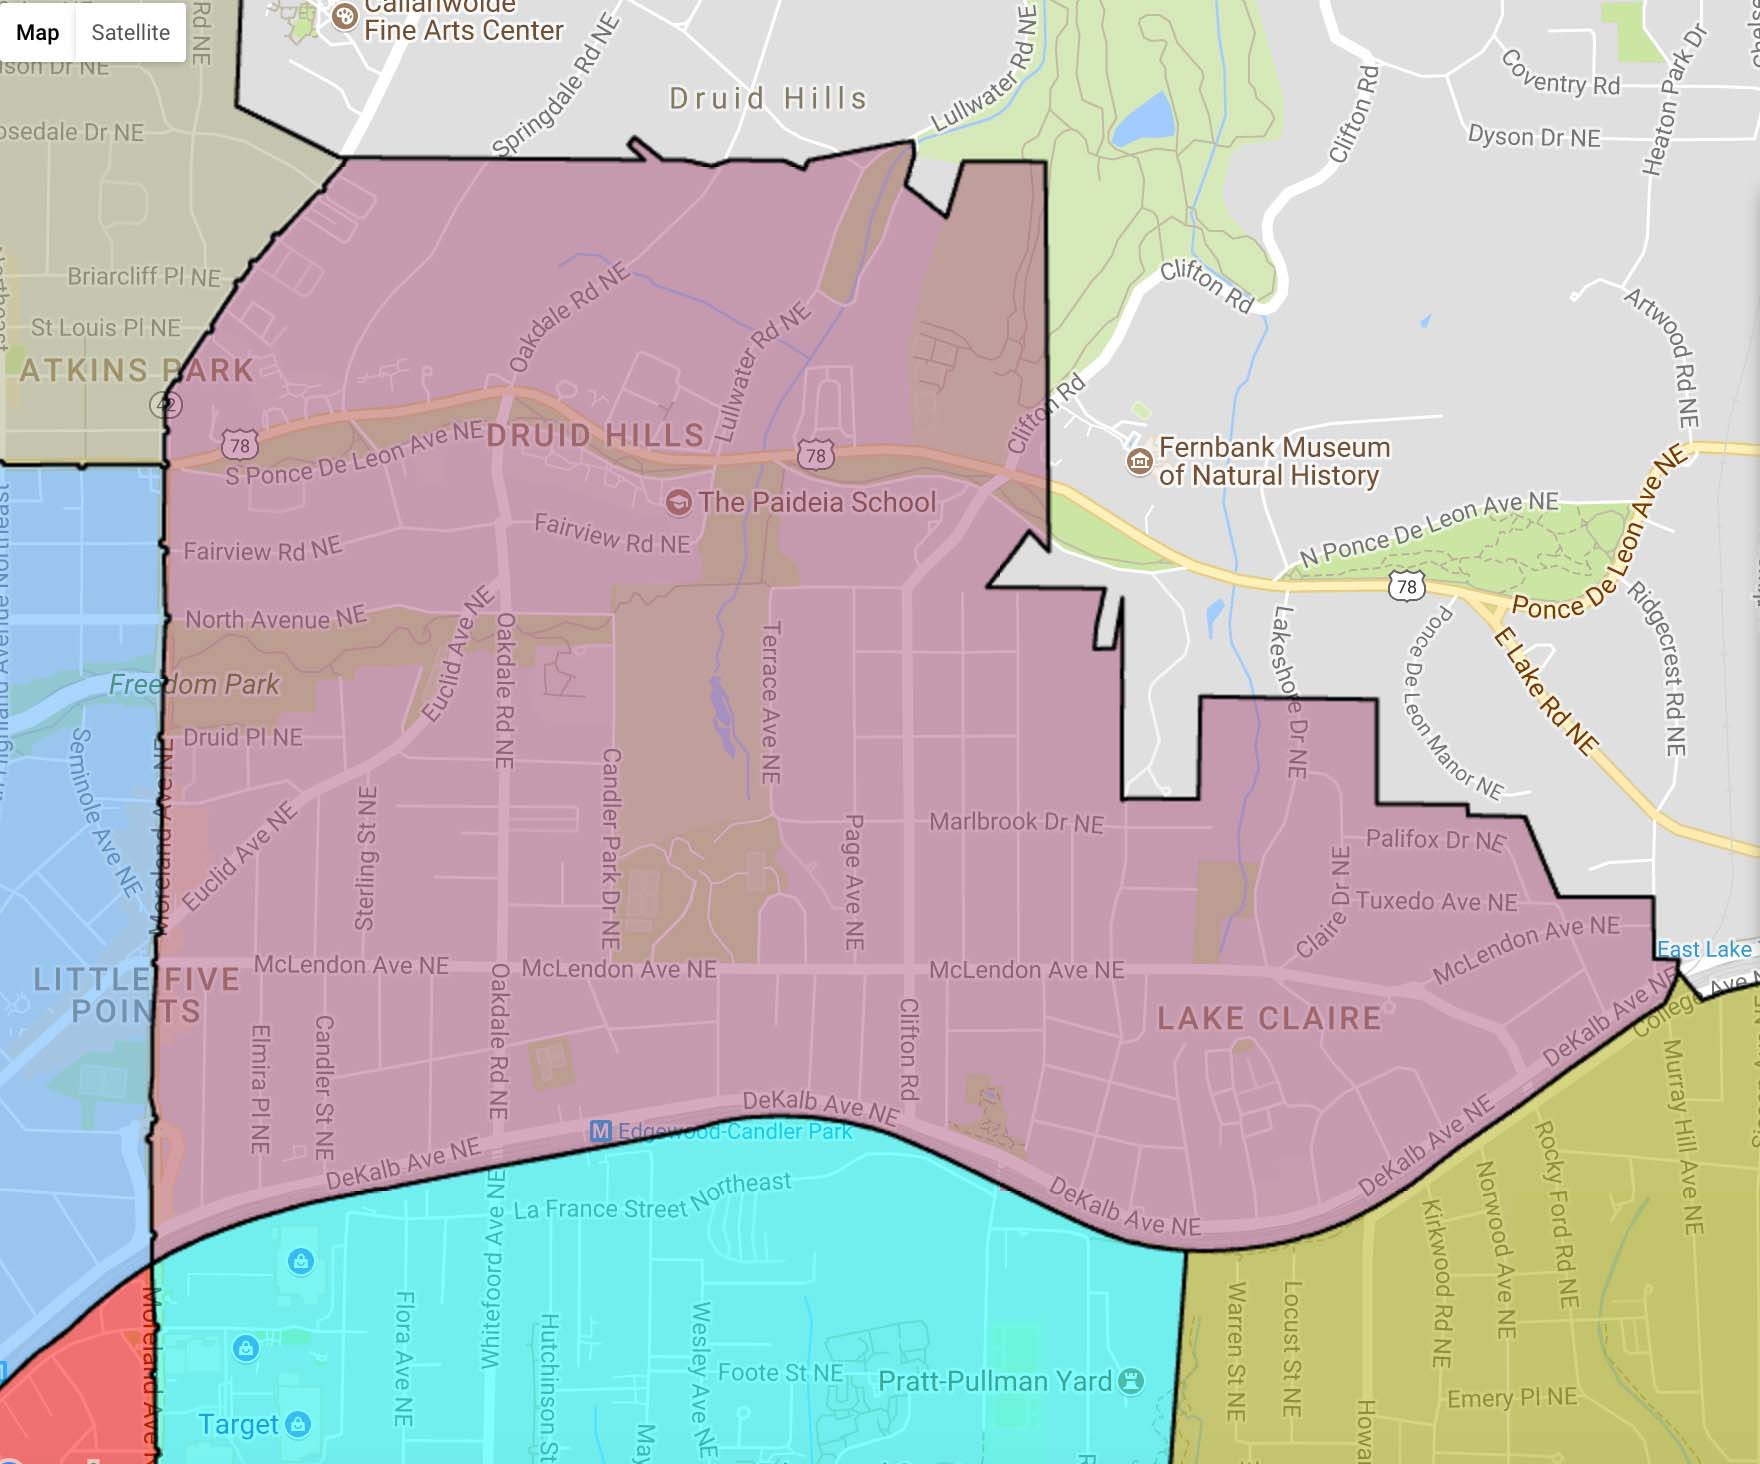 APD Zone 6, Beat 608 MAP